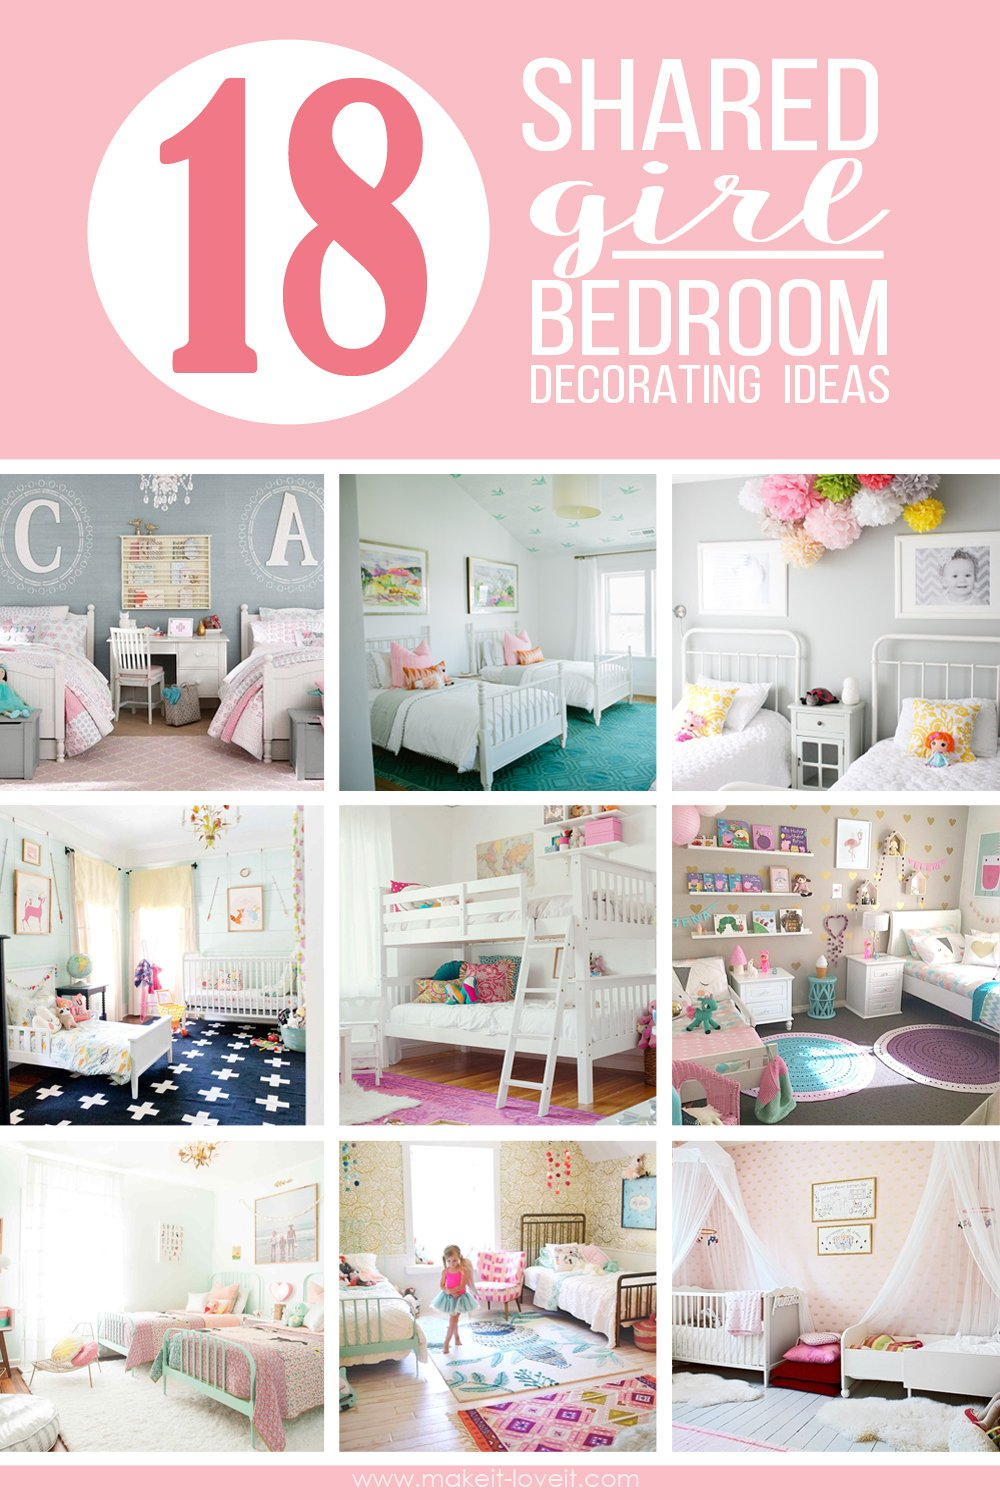 18 Shared Girl Bedroom Decorating Ideas Via Make It And Love